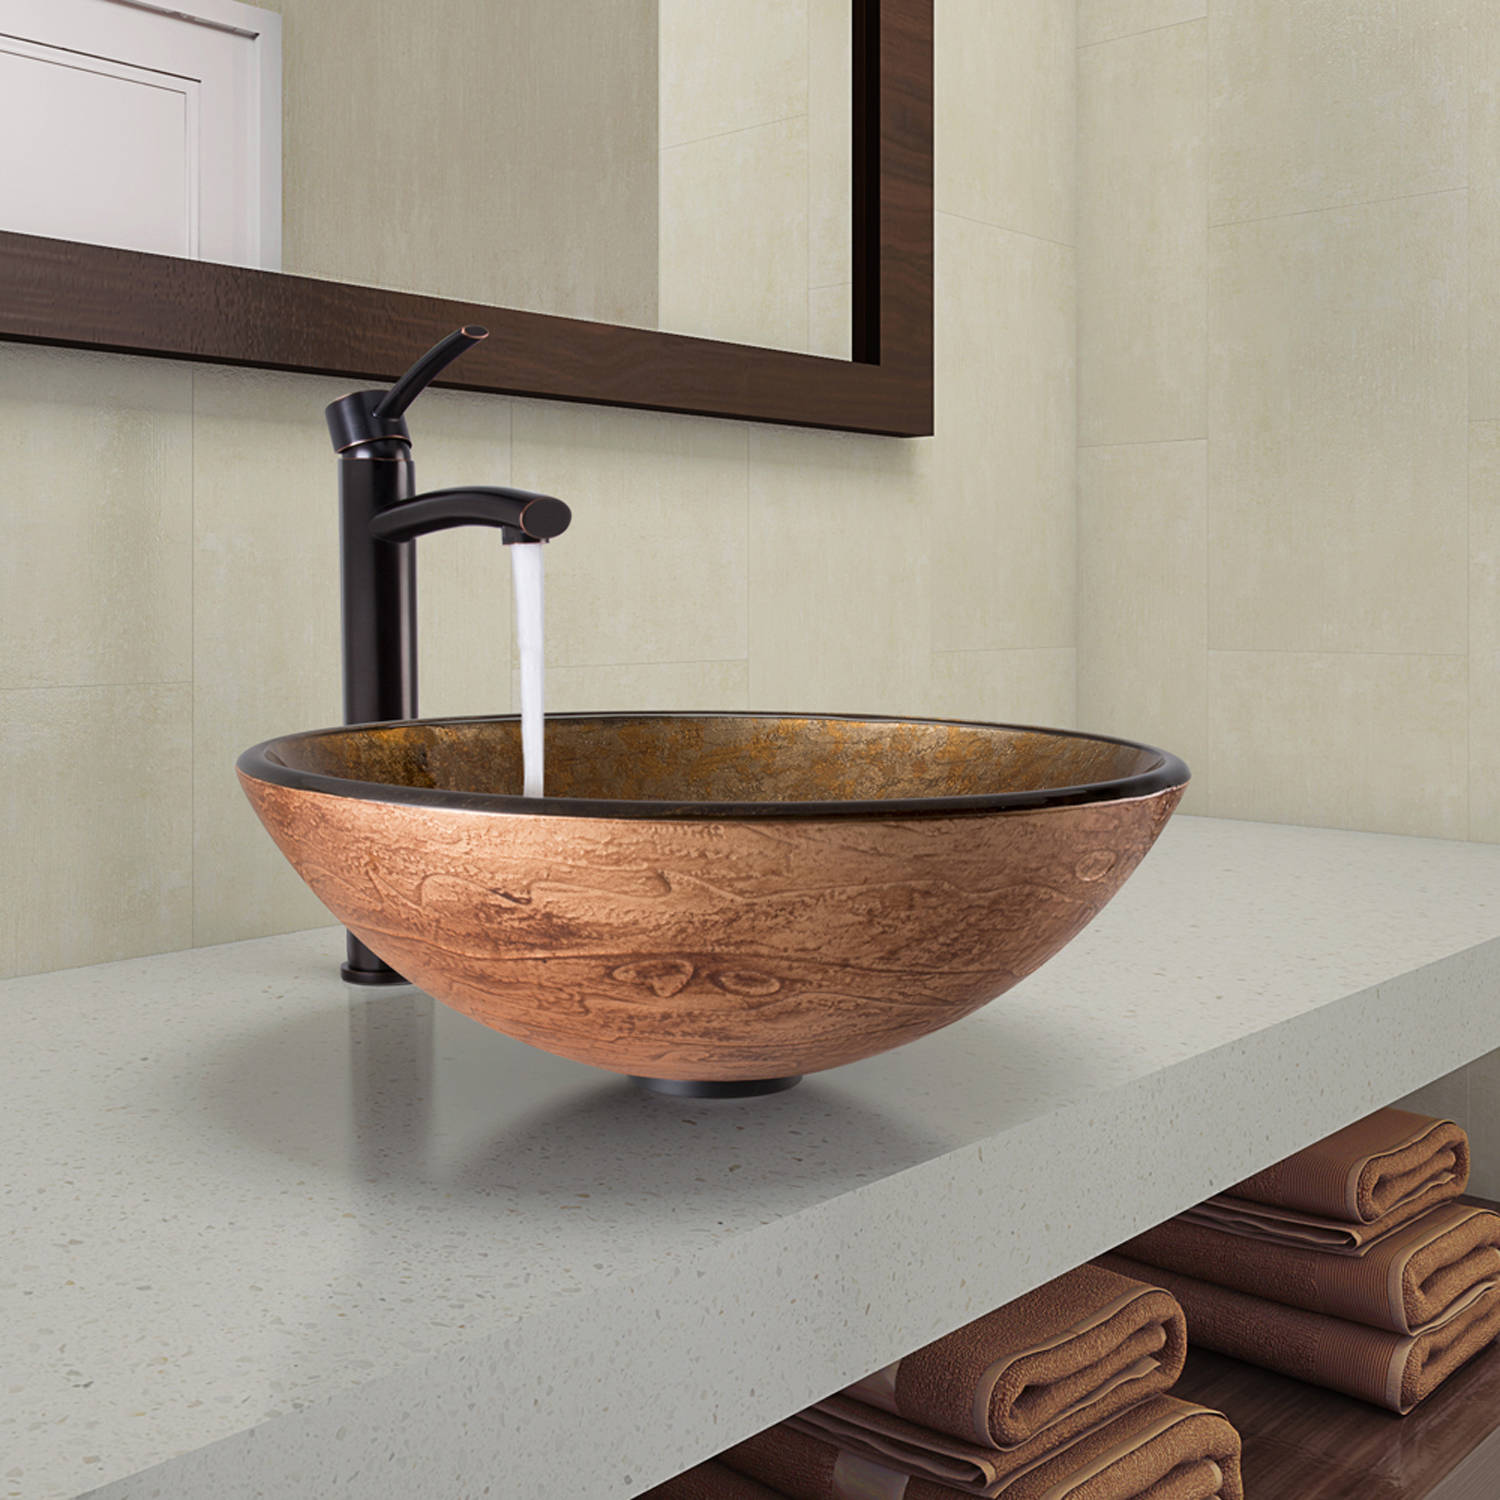 Vigo  Cappuccino Swirl Glass Vessel Bathroom Sink and Milo Faucet Set in Antique Rubbed Bronze Finish